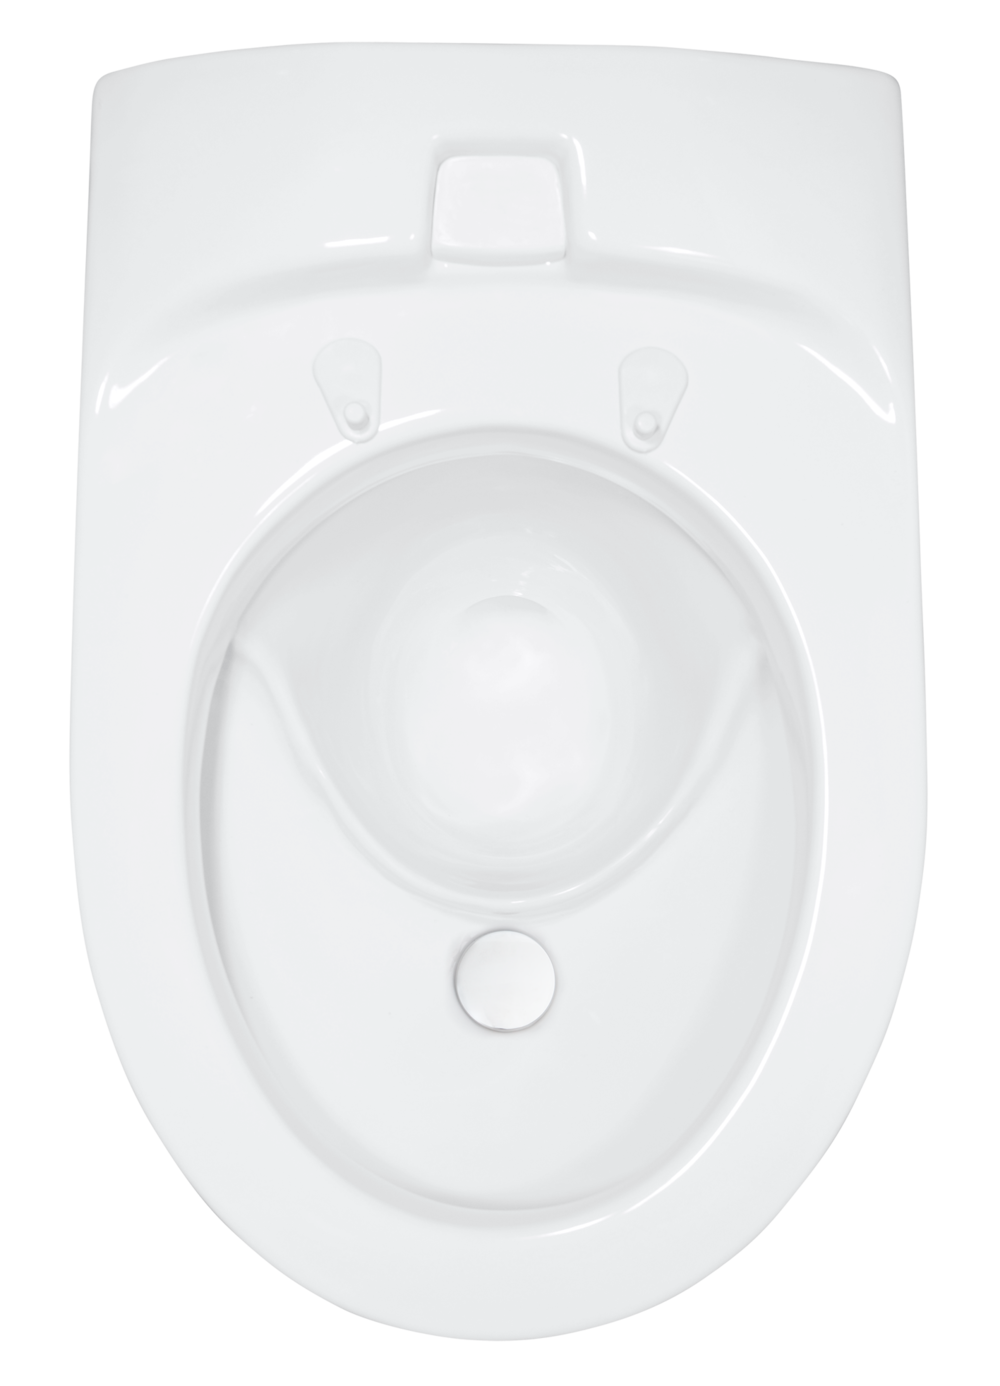 EcoVacUrine Diverting Vacuum WC - Probably the worlds most low-flushing toilet. Double-flush function with a small flush in the front of about 0,1 Liter, and the main flush of about 0,6 Liter.